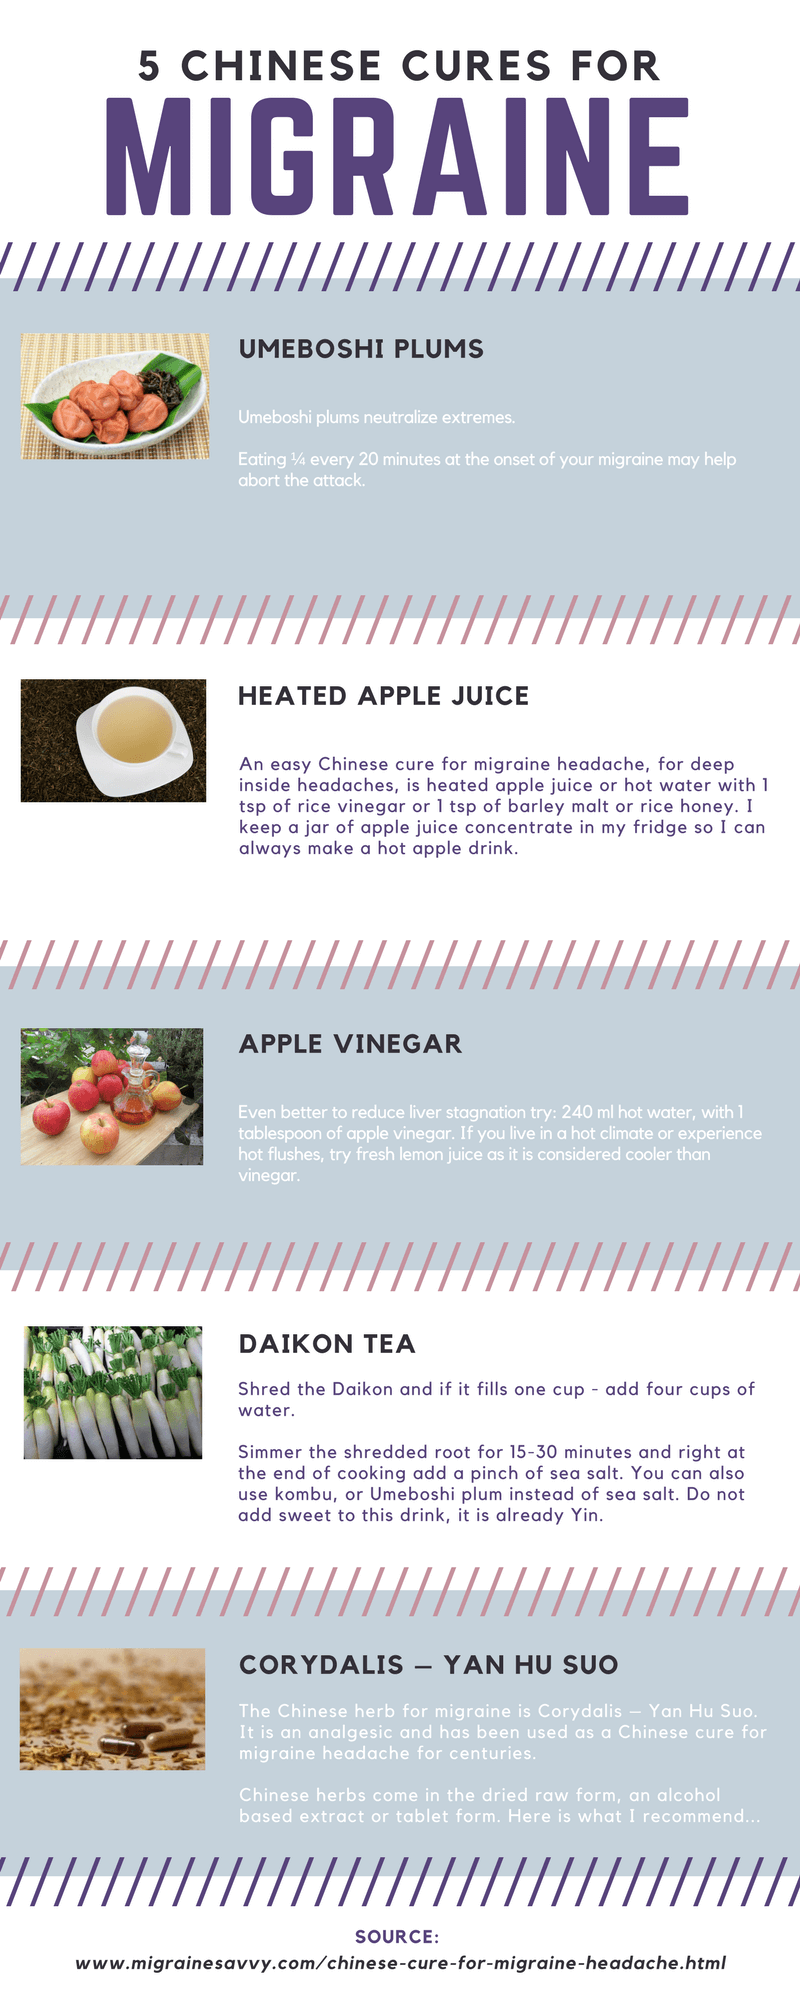 Click to enlarge 5 Chinese Cures for Migraines infographic